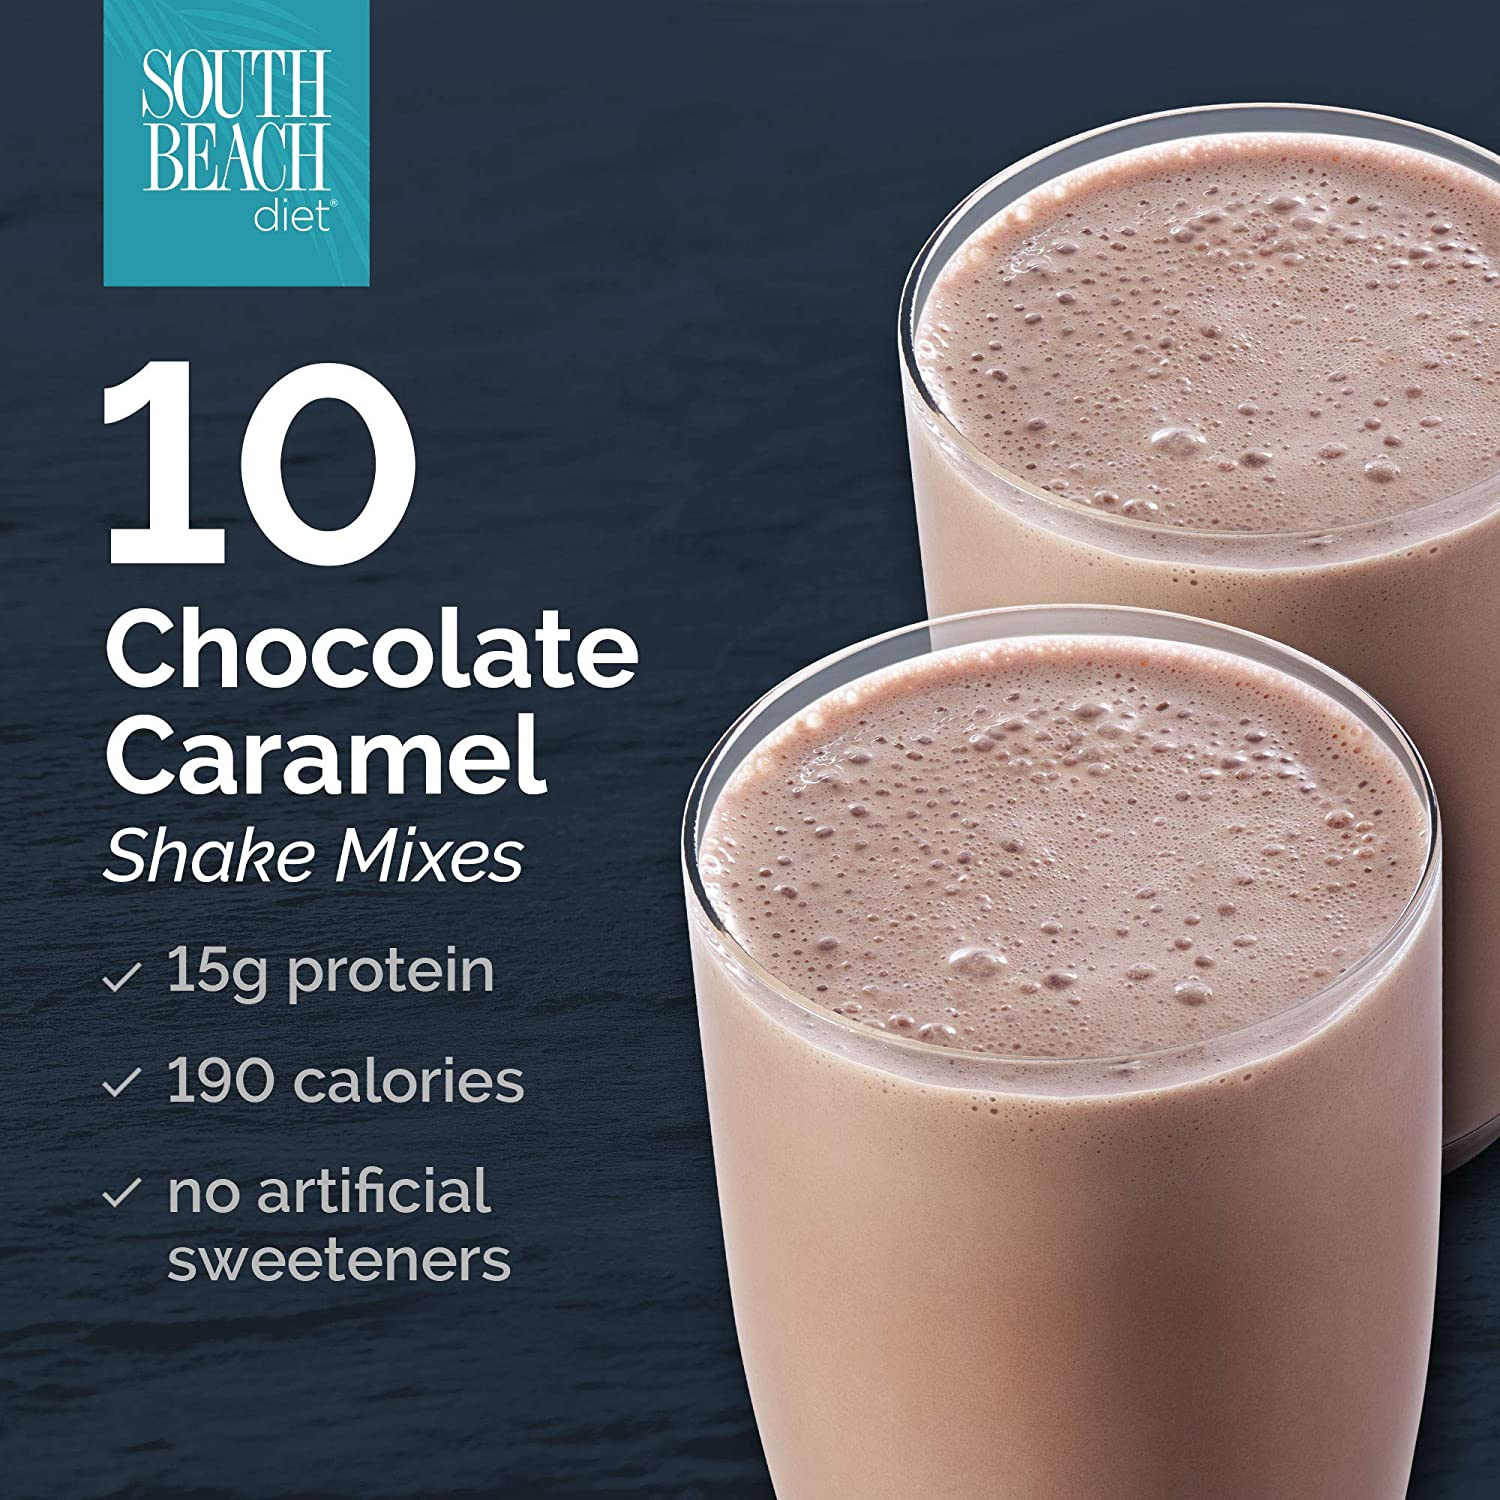 protein shakes for south beach diet